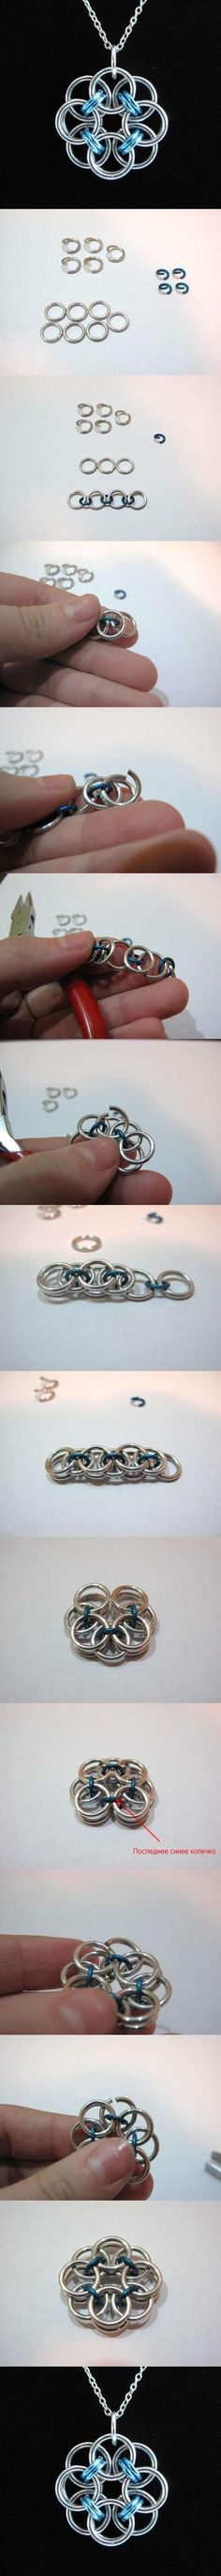 DIY Rose Wire Pendant DIY Rose Wire Pendant: